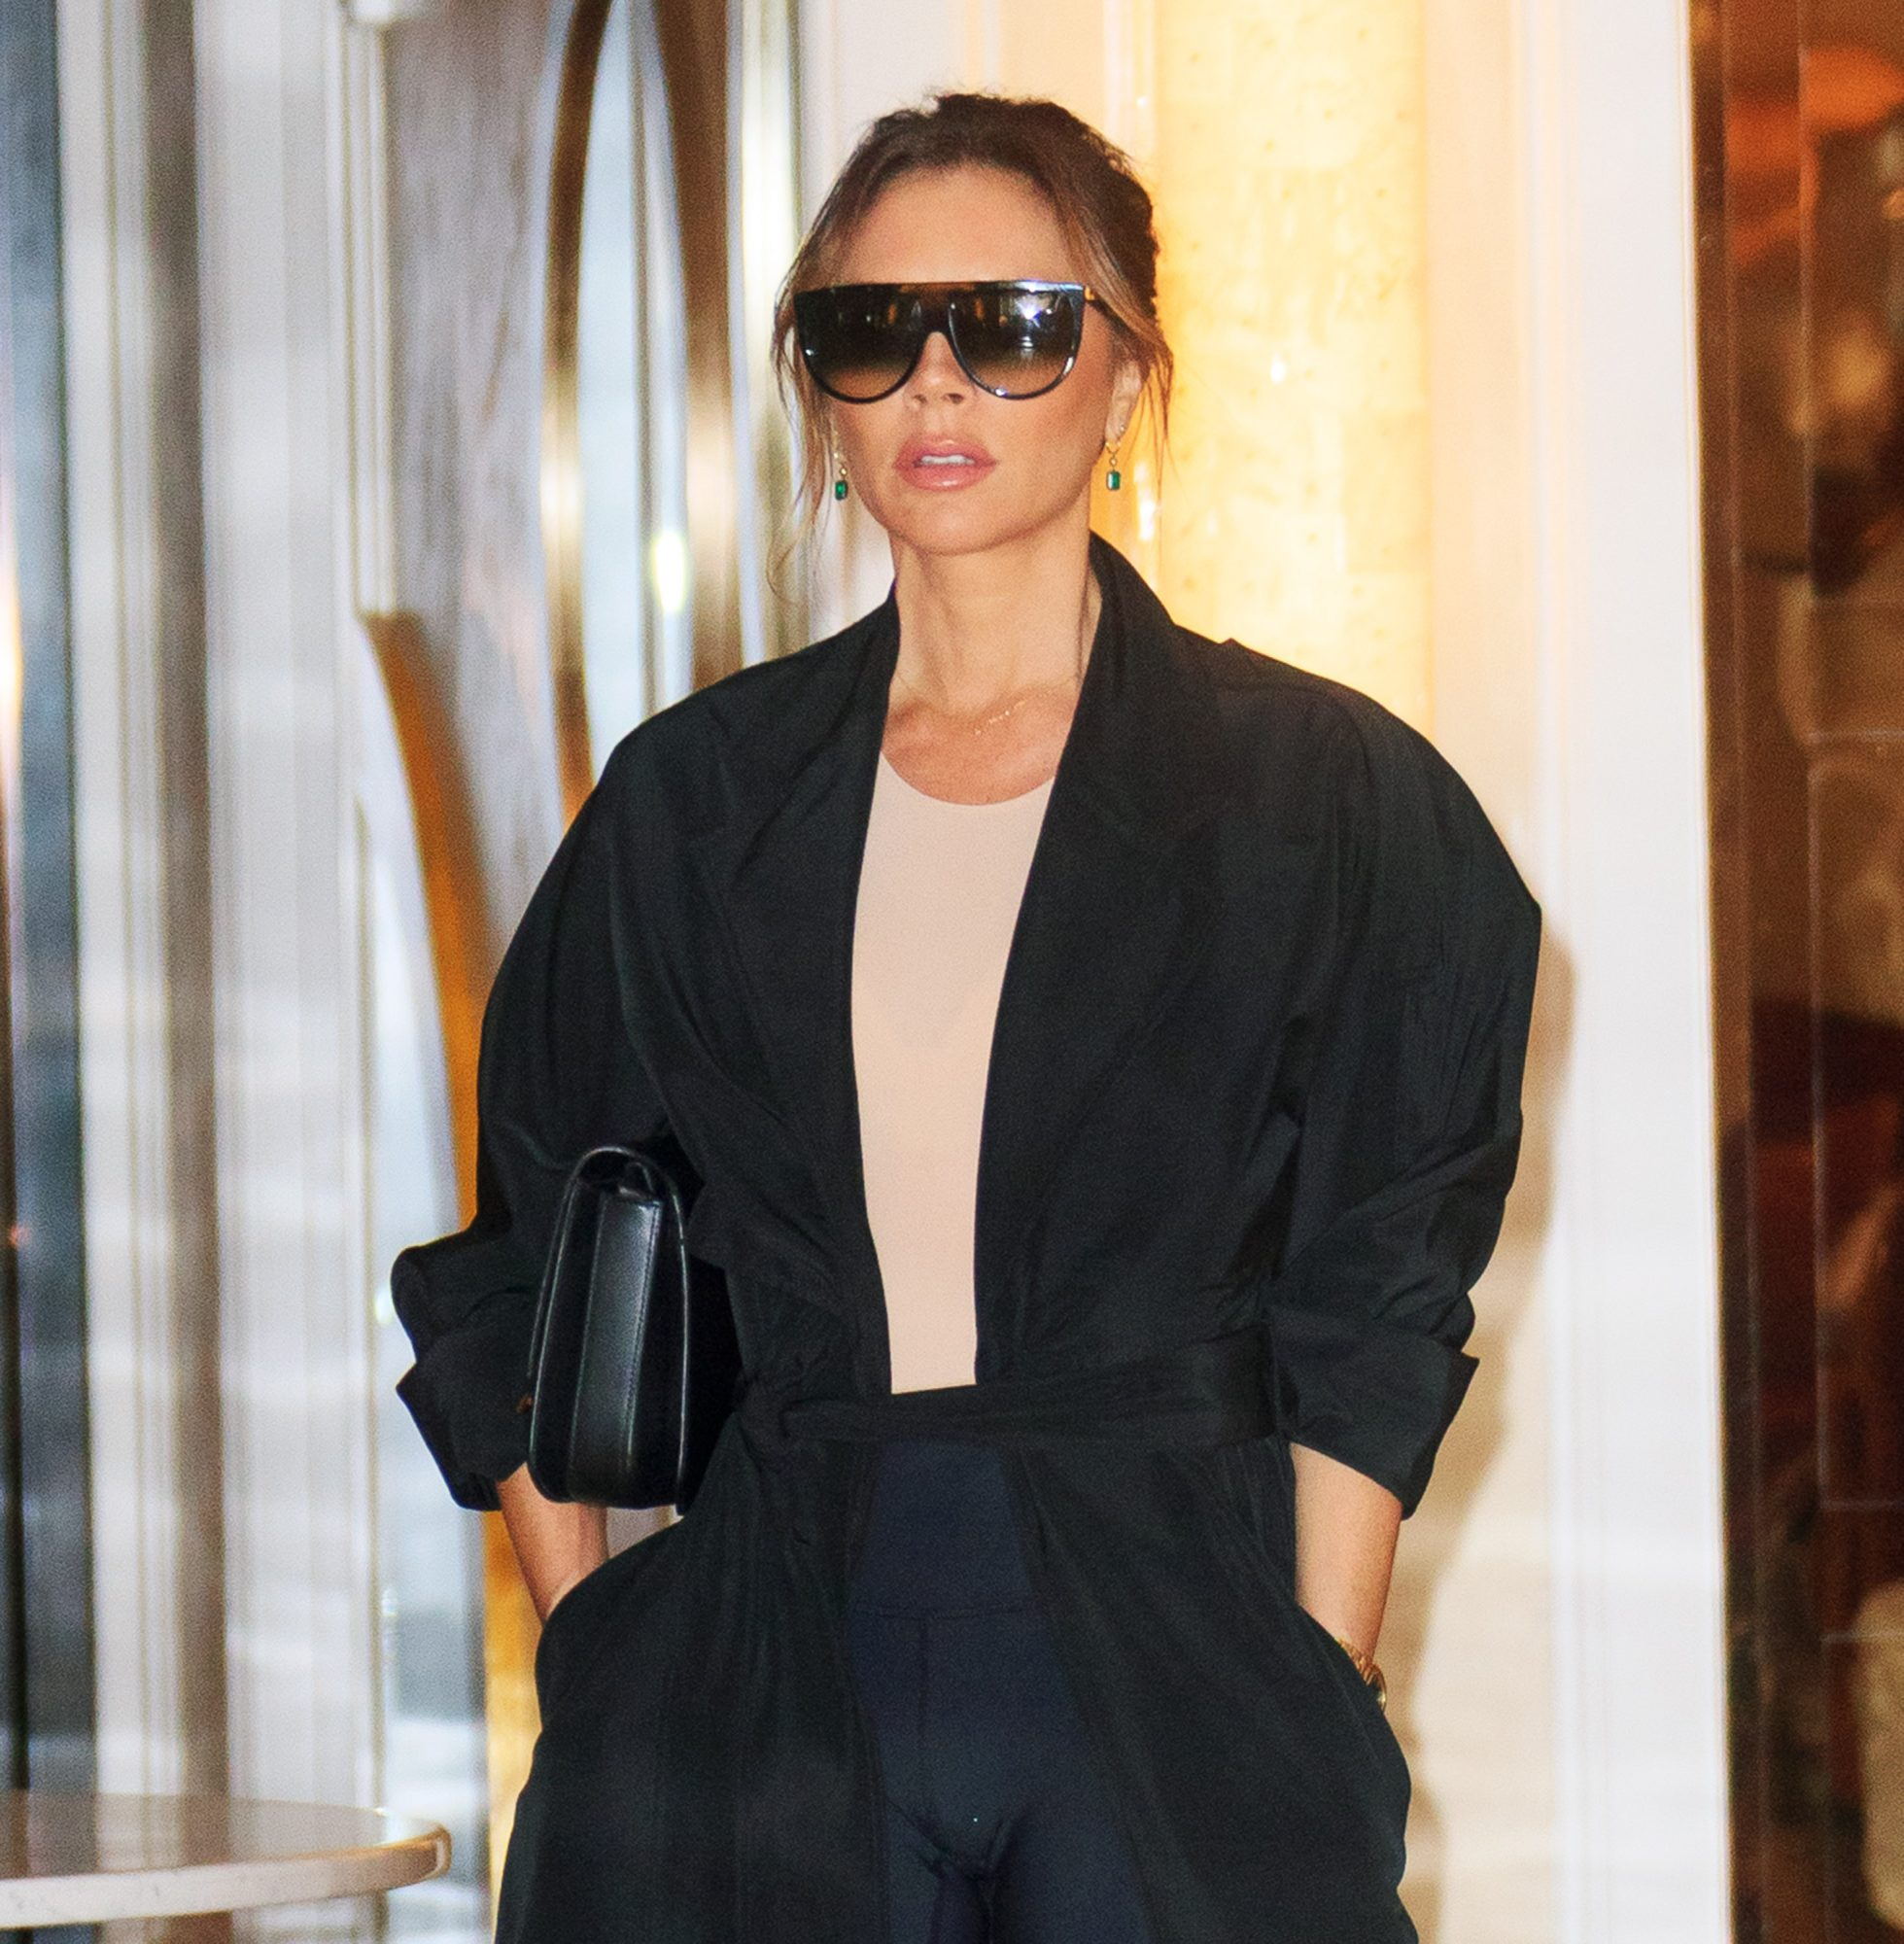 Victoria Beckham Just Designed the Coolest Pair of White Sneakers